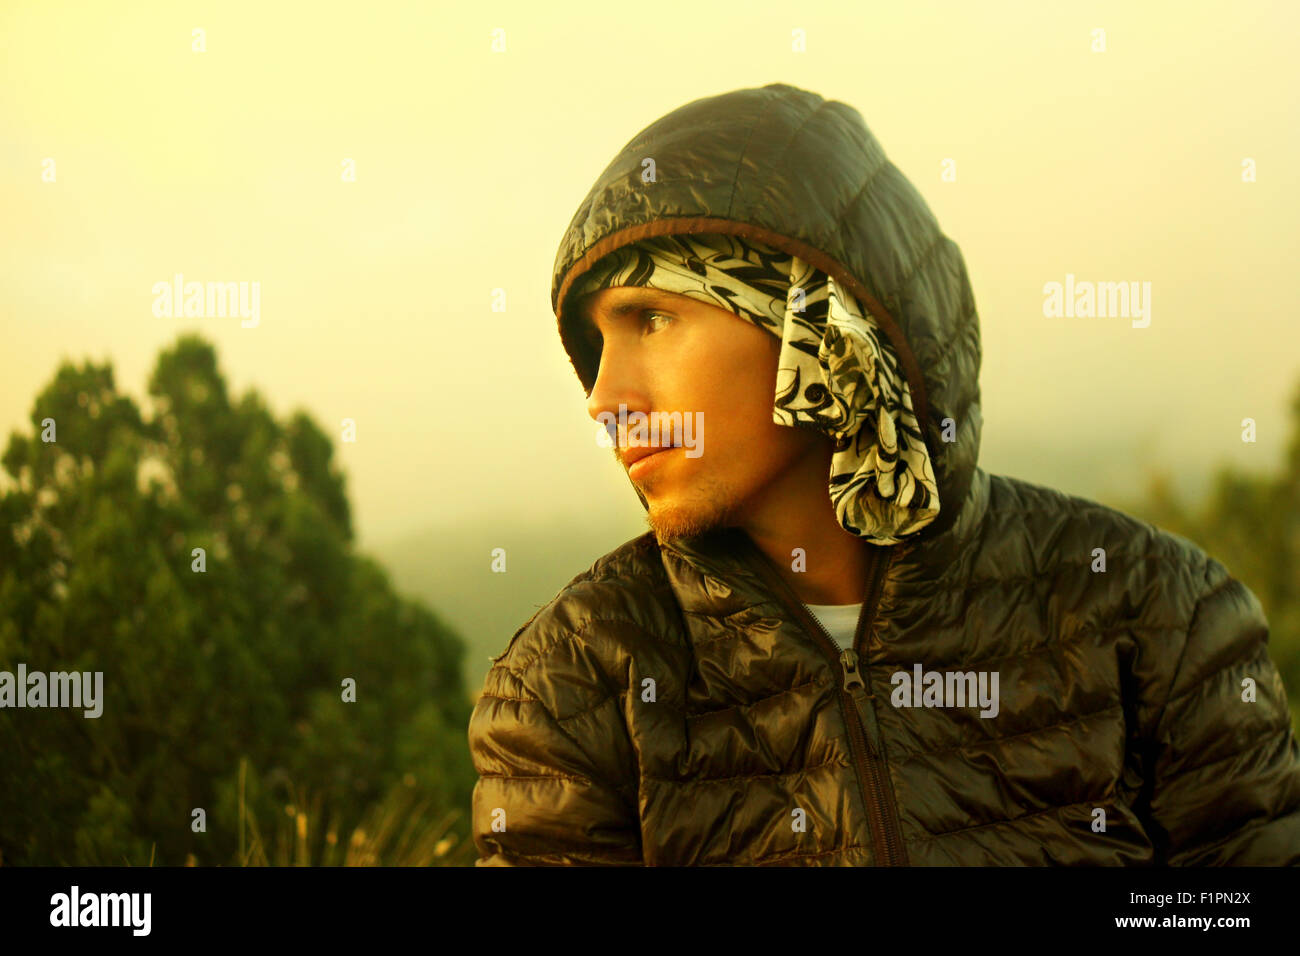 Young handsome man with beard in autumn dark jacket hooded down in the wild looks away. Filter was used. - Stock Image